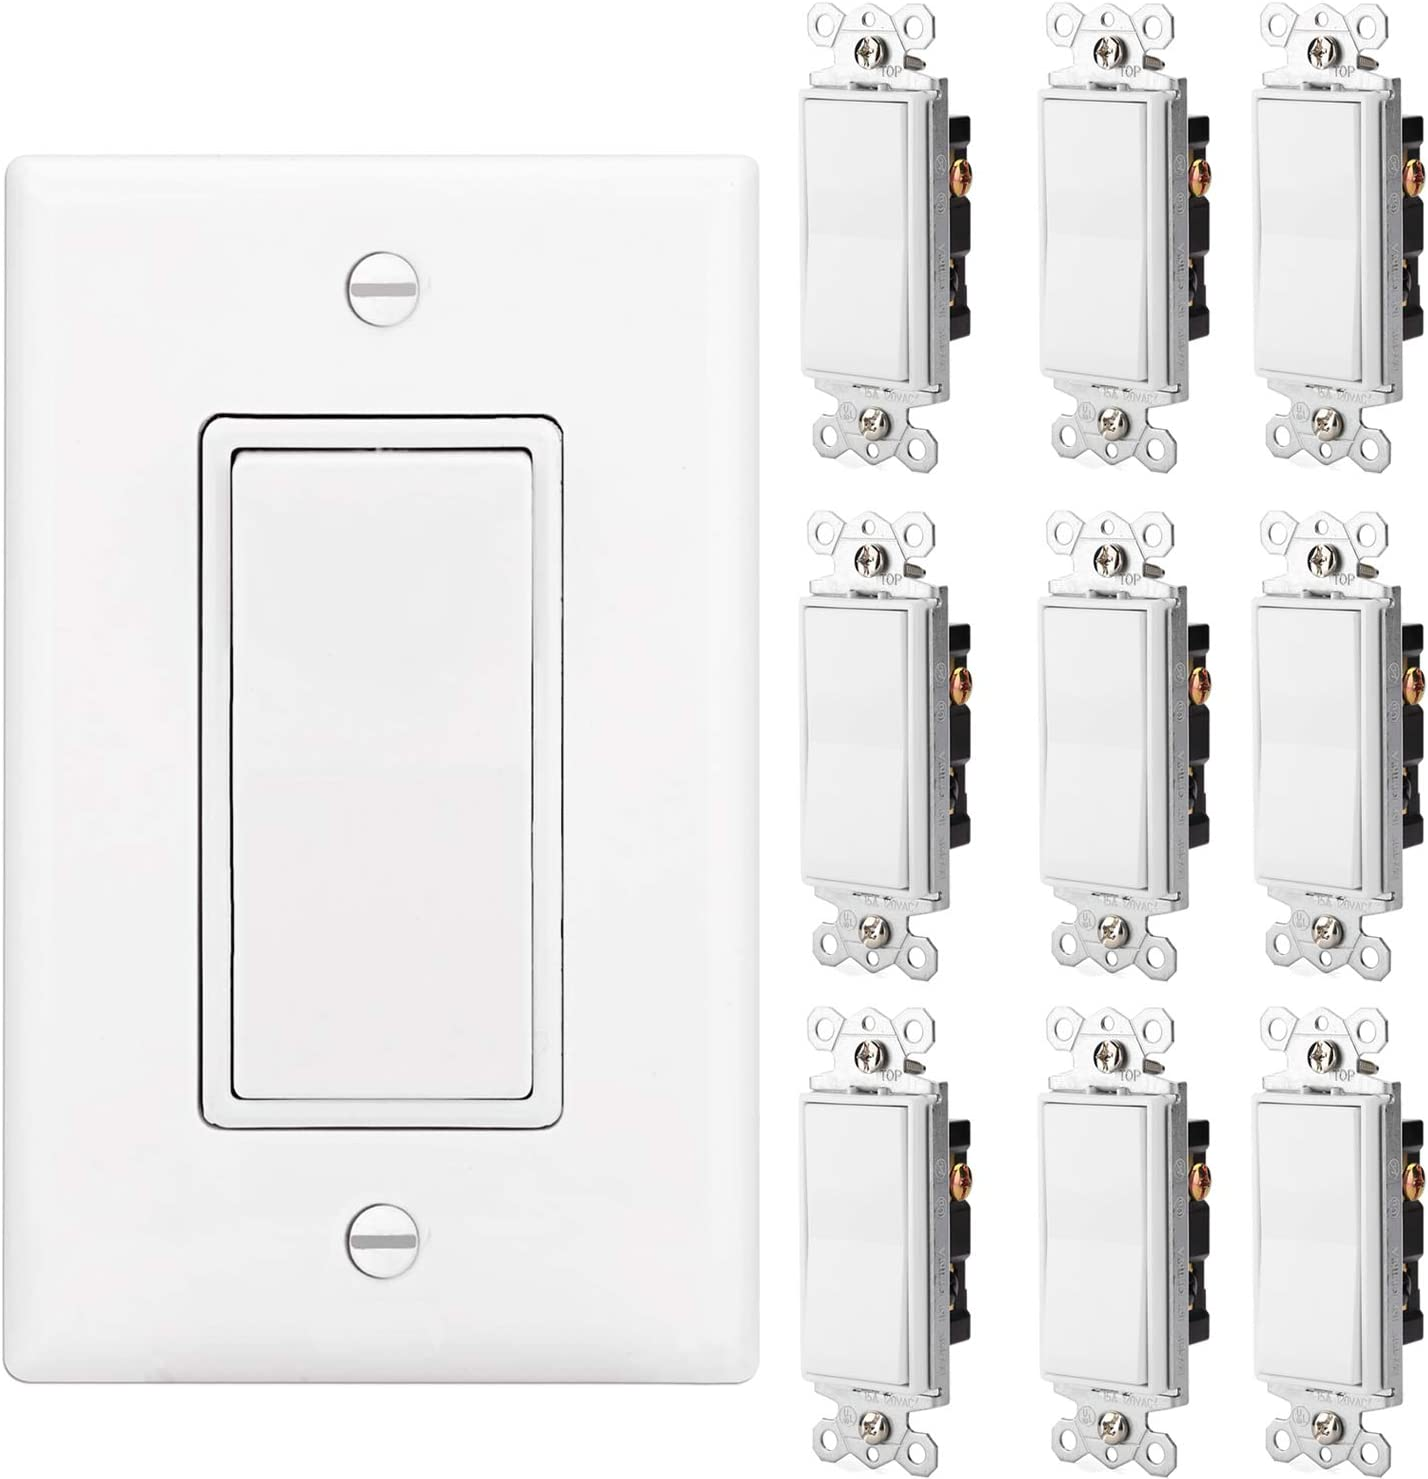 [10 Pack] BESTTEN Upgraded 3 Way ON/OFF Light Switch, Quiet AC Paddle Rocker Switch, 15Amp 120/277V, Decorator Wall Plate Included, Grounding Screw, Commercial and Residential Grade, UL Listed, White